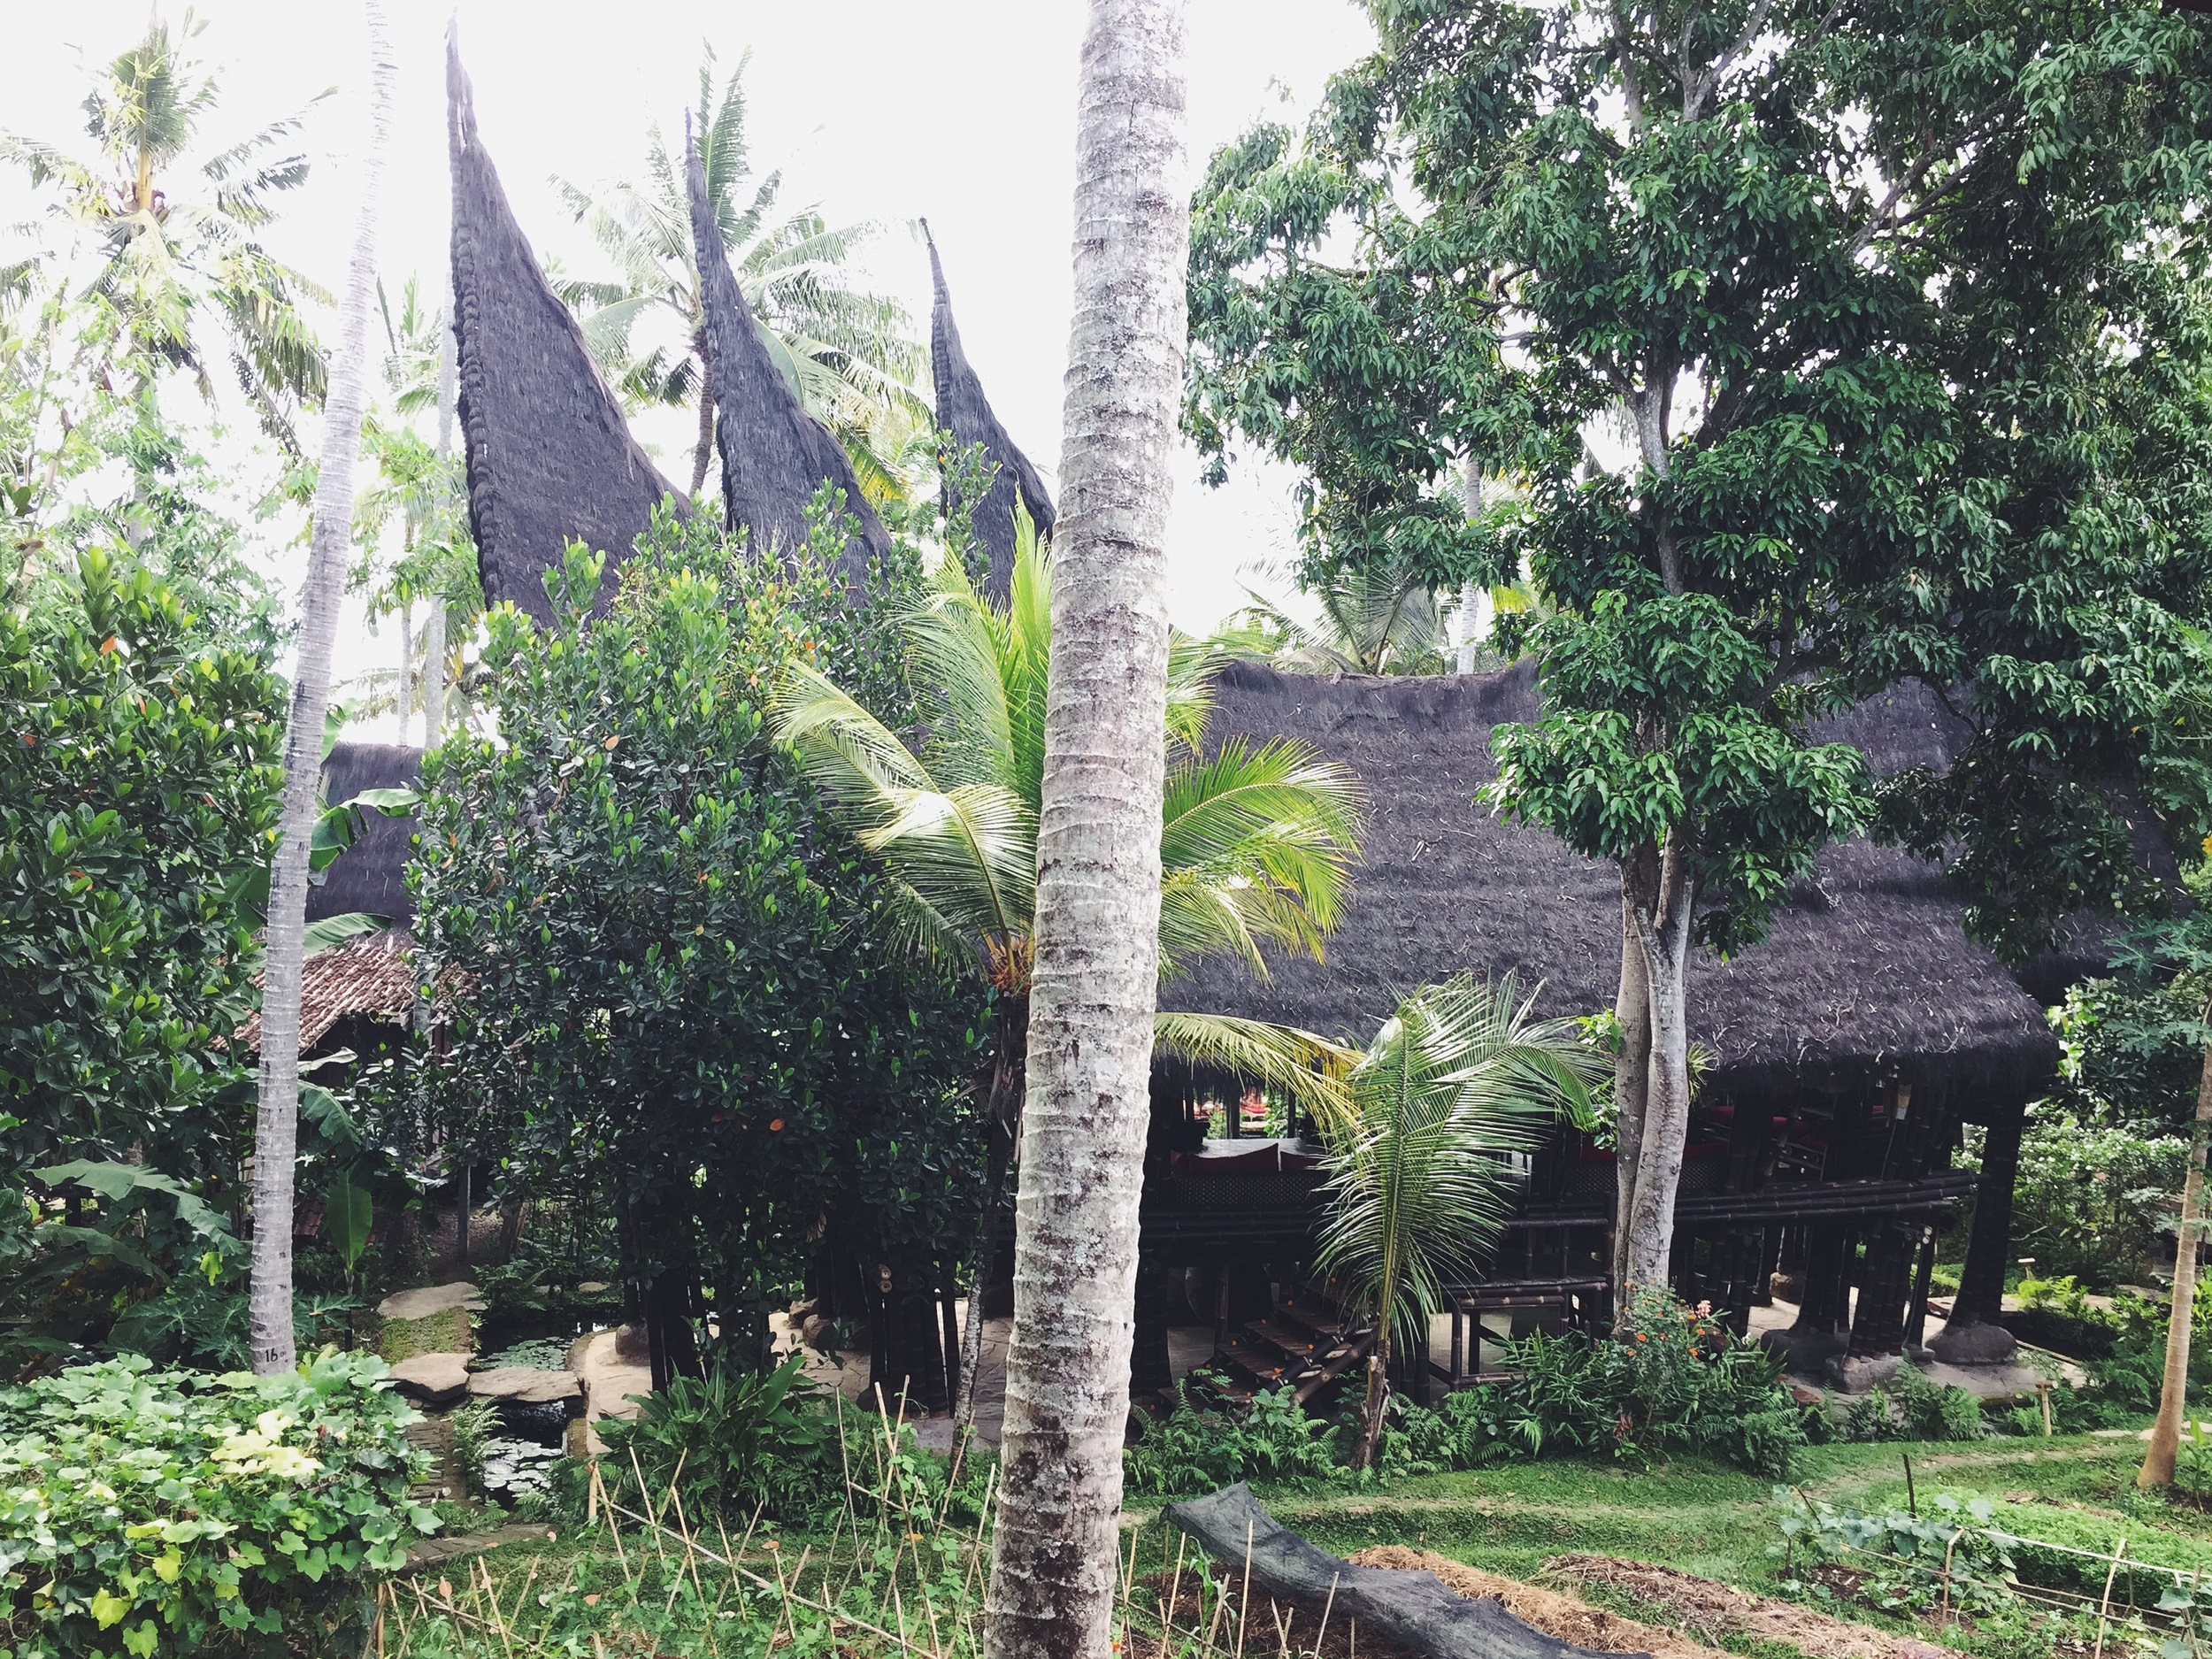 While in Ubud we stayed at Bambu Hinda, an eco-resort made of bamboo structures and old Javanese bridal huts. The entire resort has views of rice paddies and serves some of the best food in Bali.